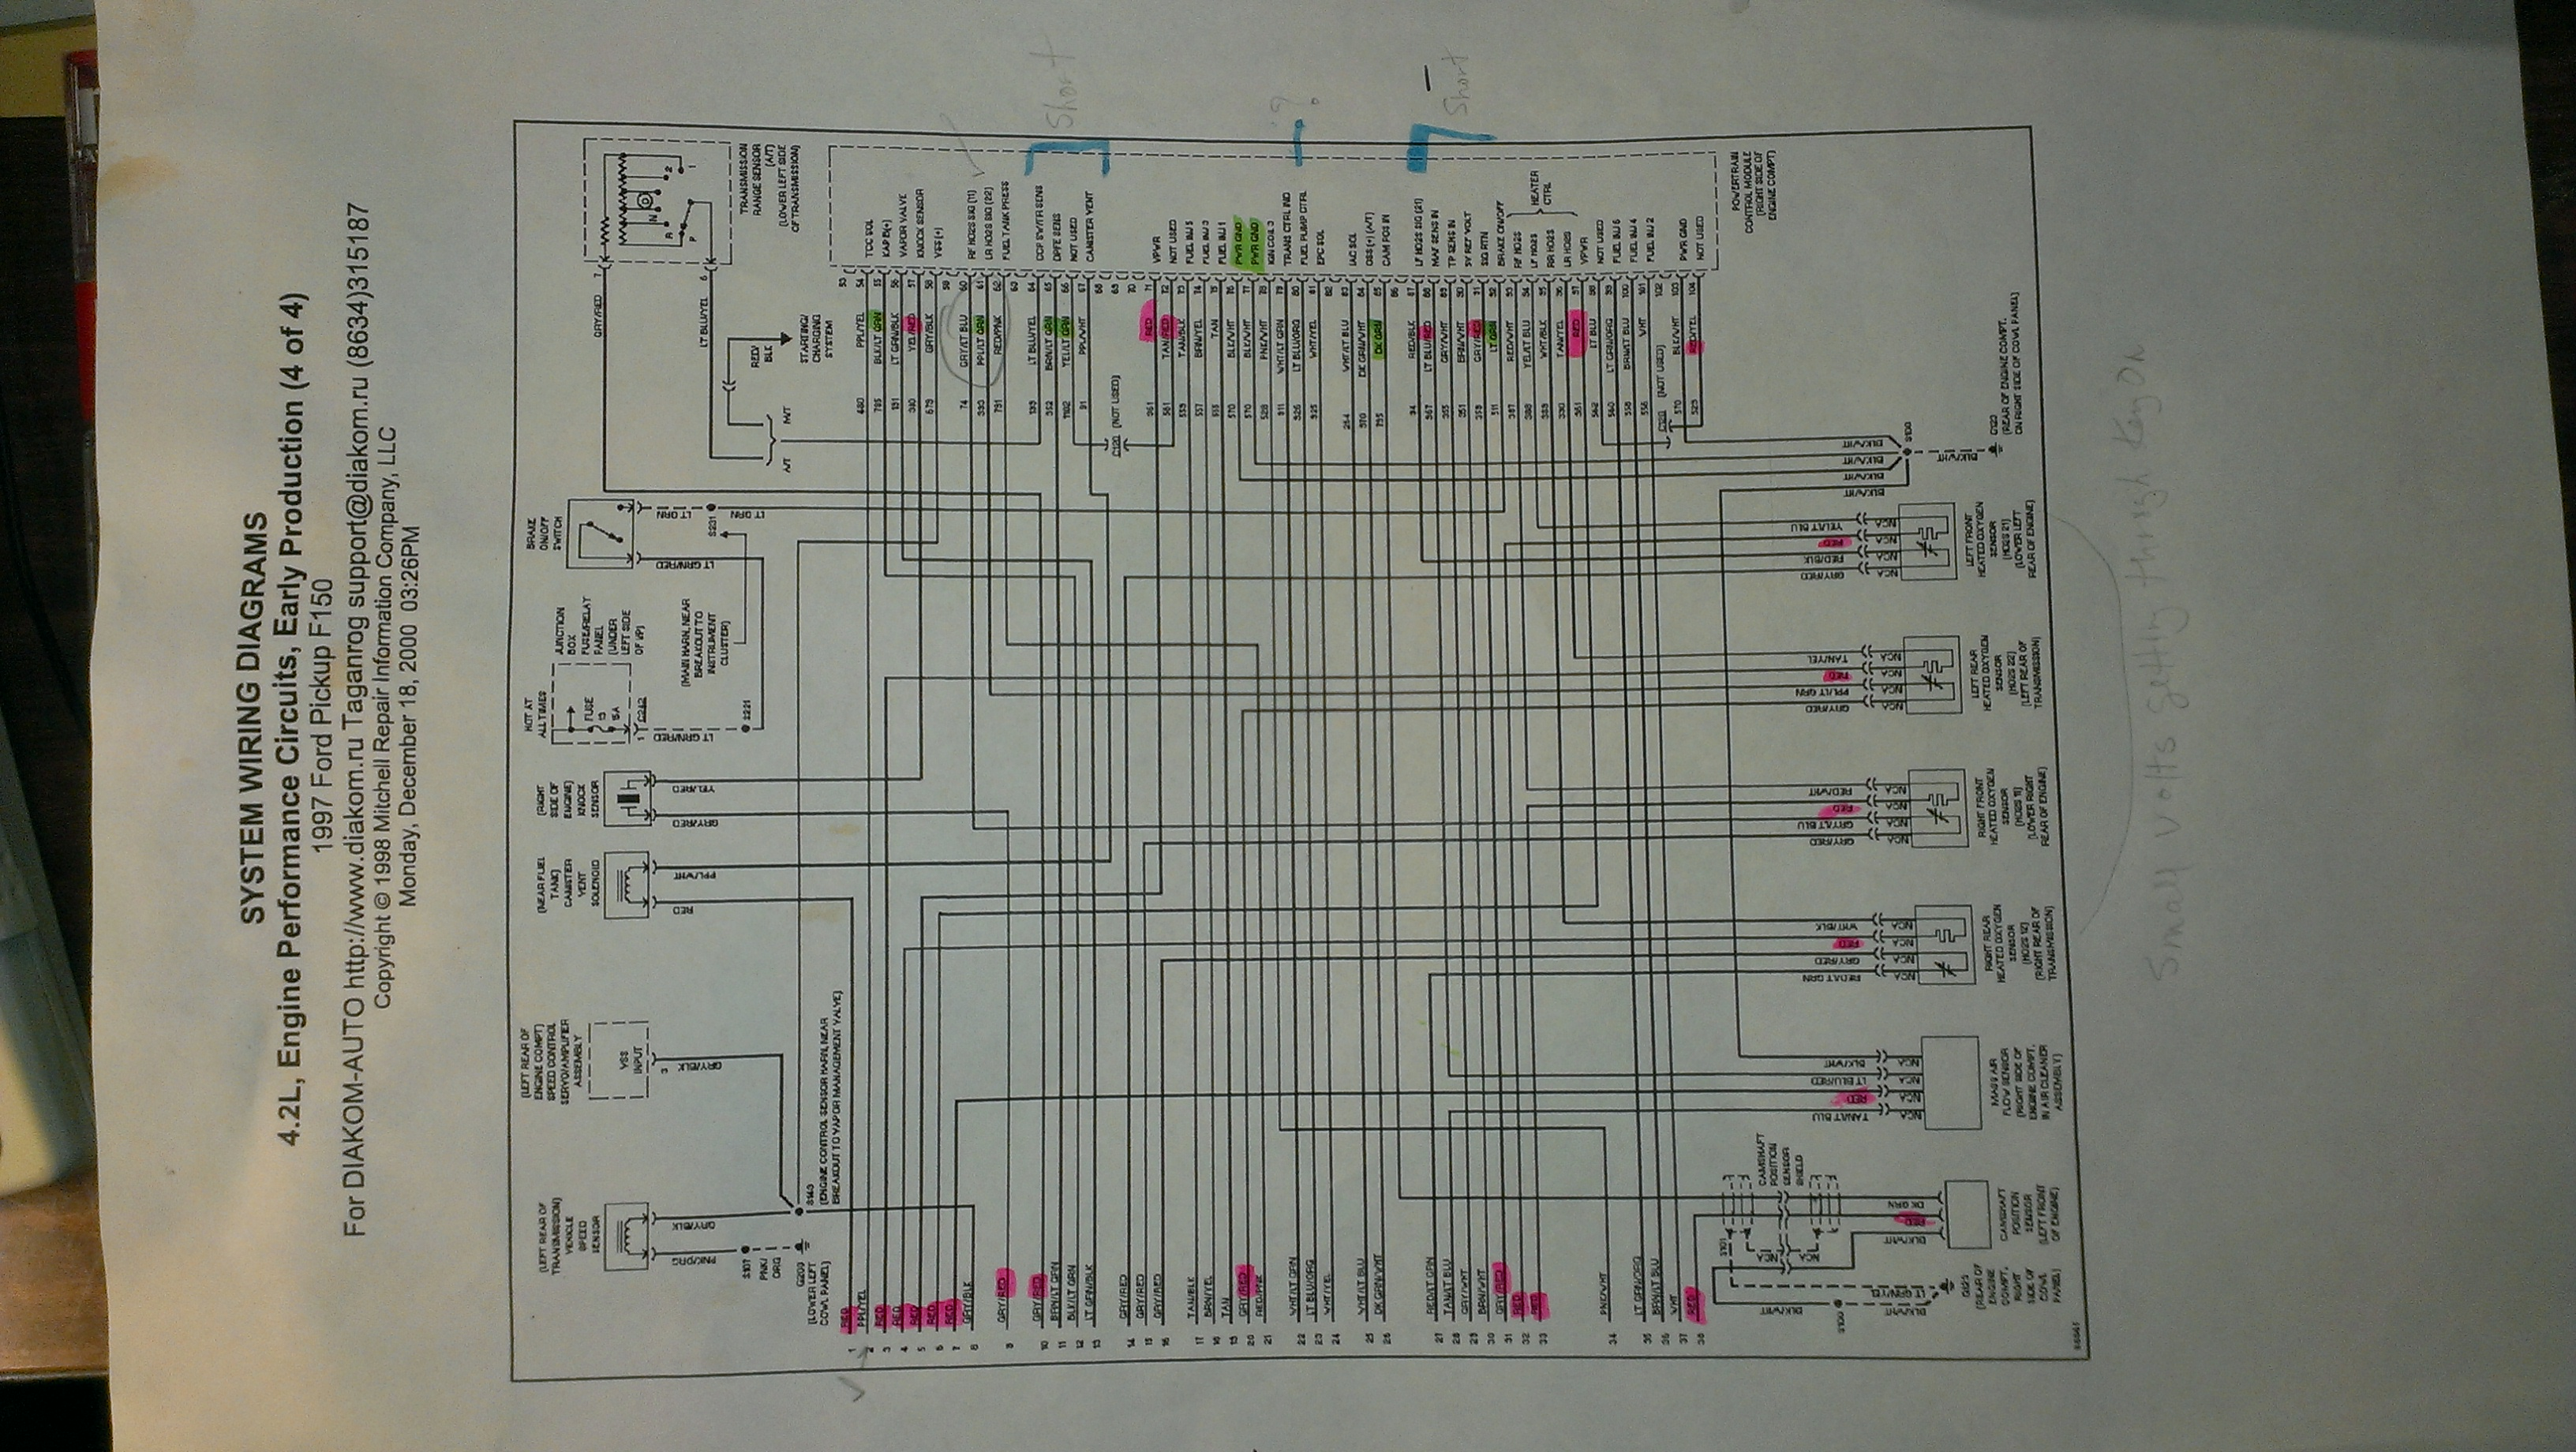 Was Following Your 97 F150 Thread From 4 Years Ago And I Have A 1997 Ford Pickup F350 System Wiring Diagram Service Repair 2014 07 06 211609 Imag1189